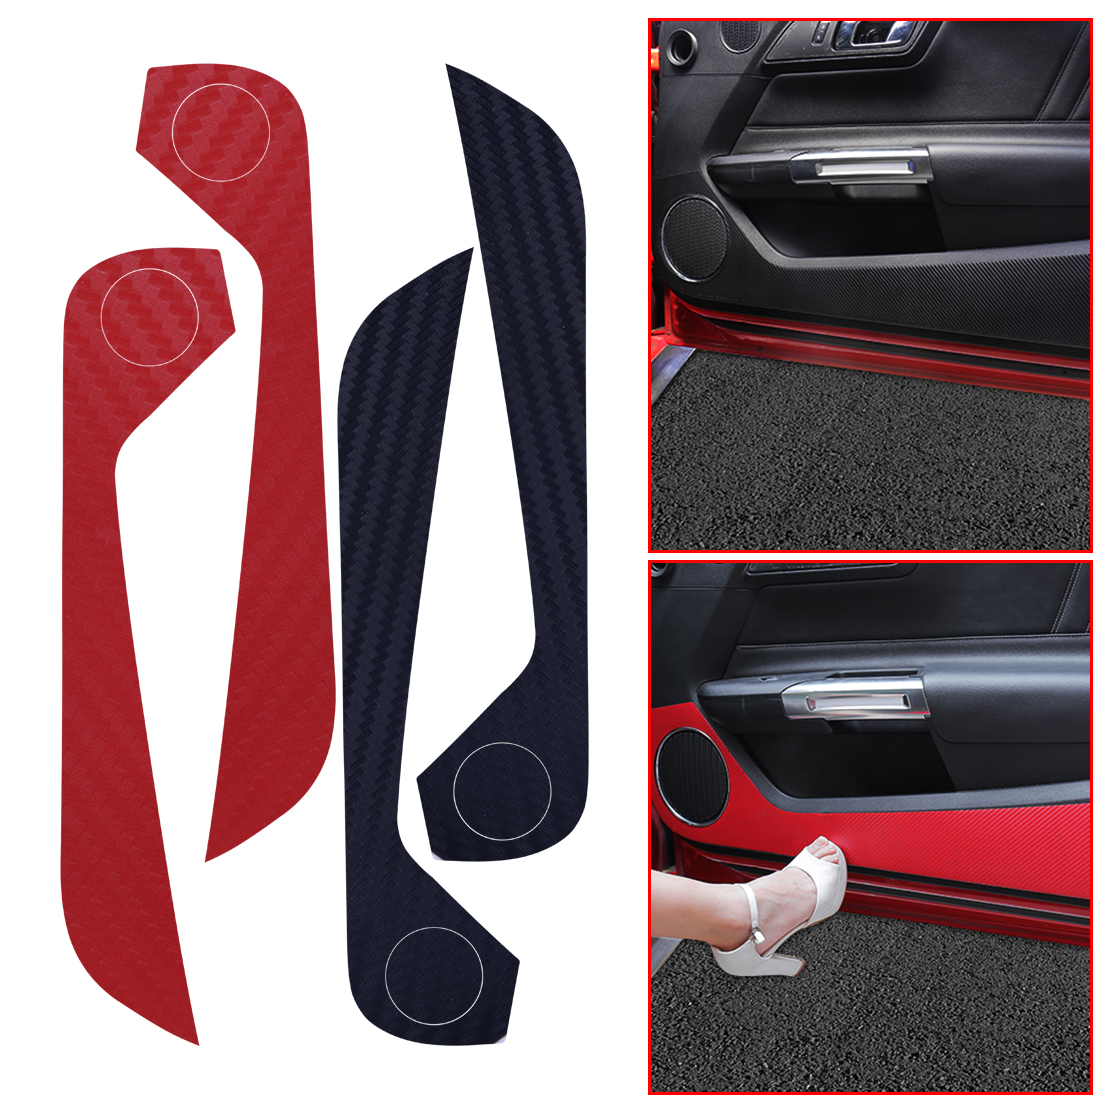 CITALL 1 Pair Car Inner Door Side Anti-Kick Sticker Decal Carbon Fiber Trim Fit For Ford Mustang 2015 2016 2017 2018